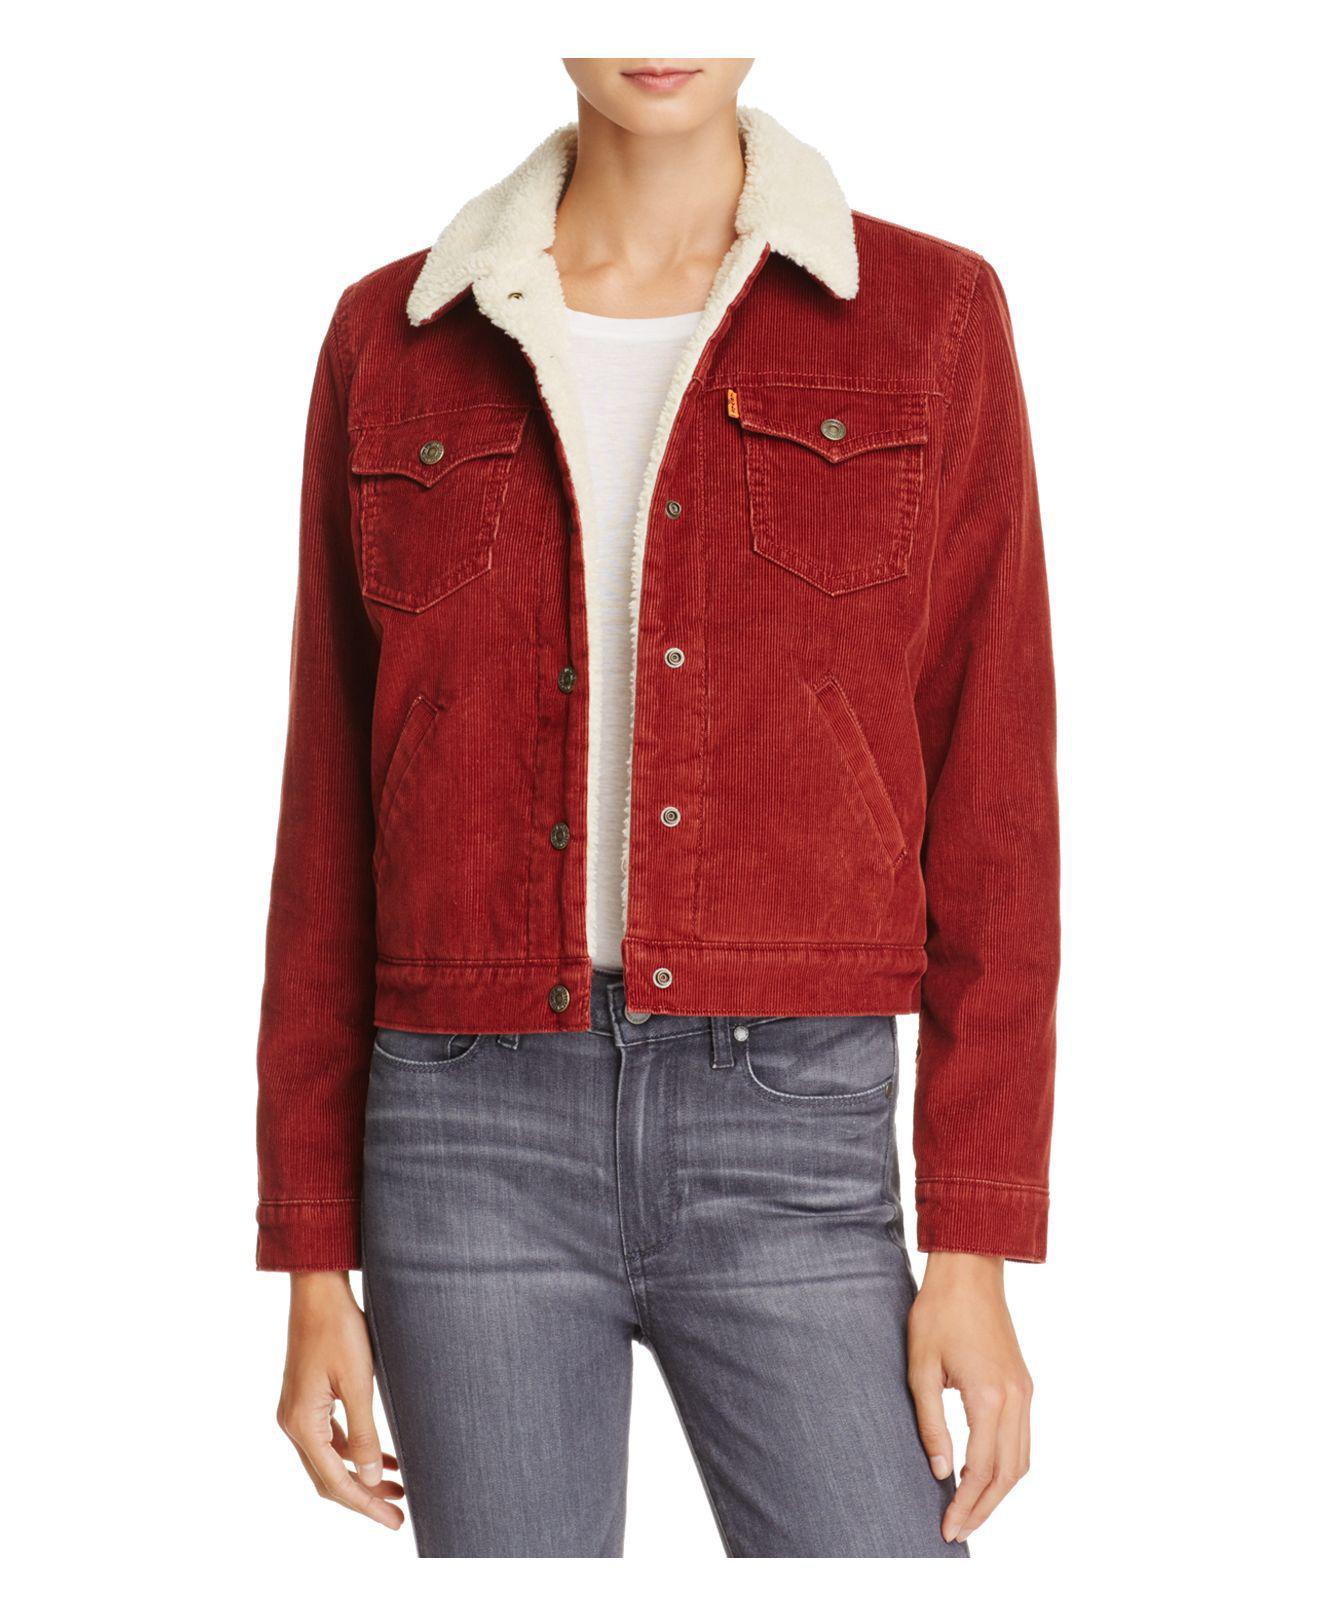 88dd7f2e033 Lyst levis corduroy sherpa lined trucker jacket in red jpg 1320x1616 Levis  fleece lined jackets